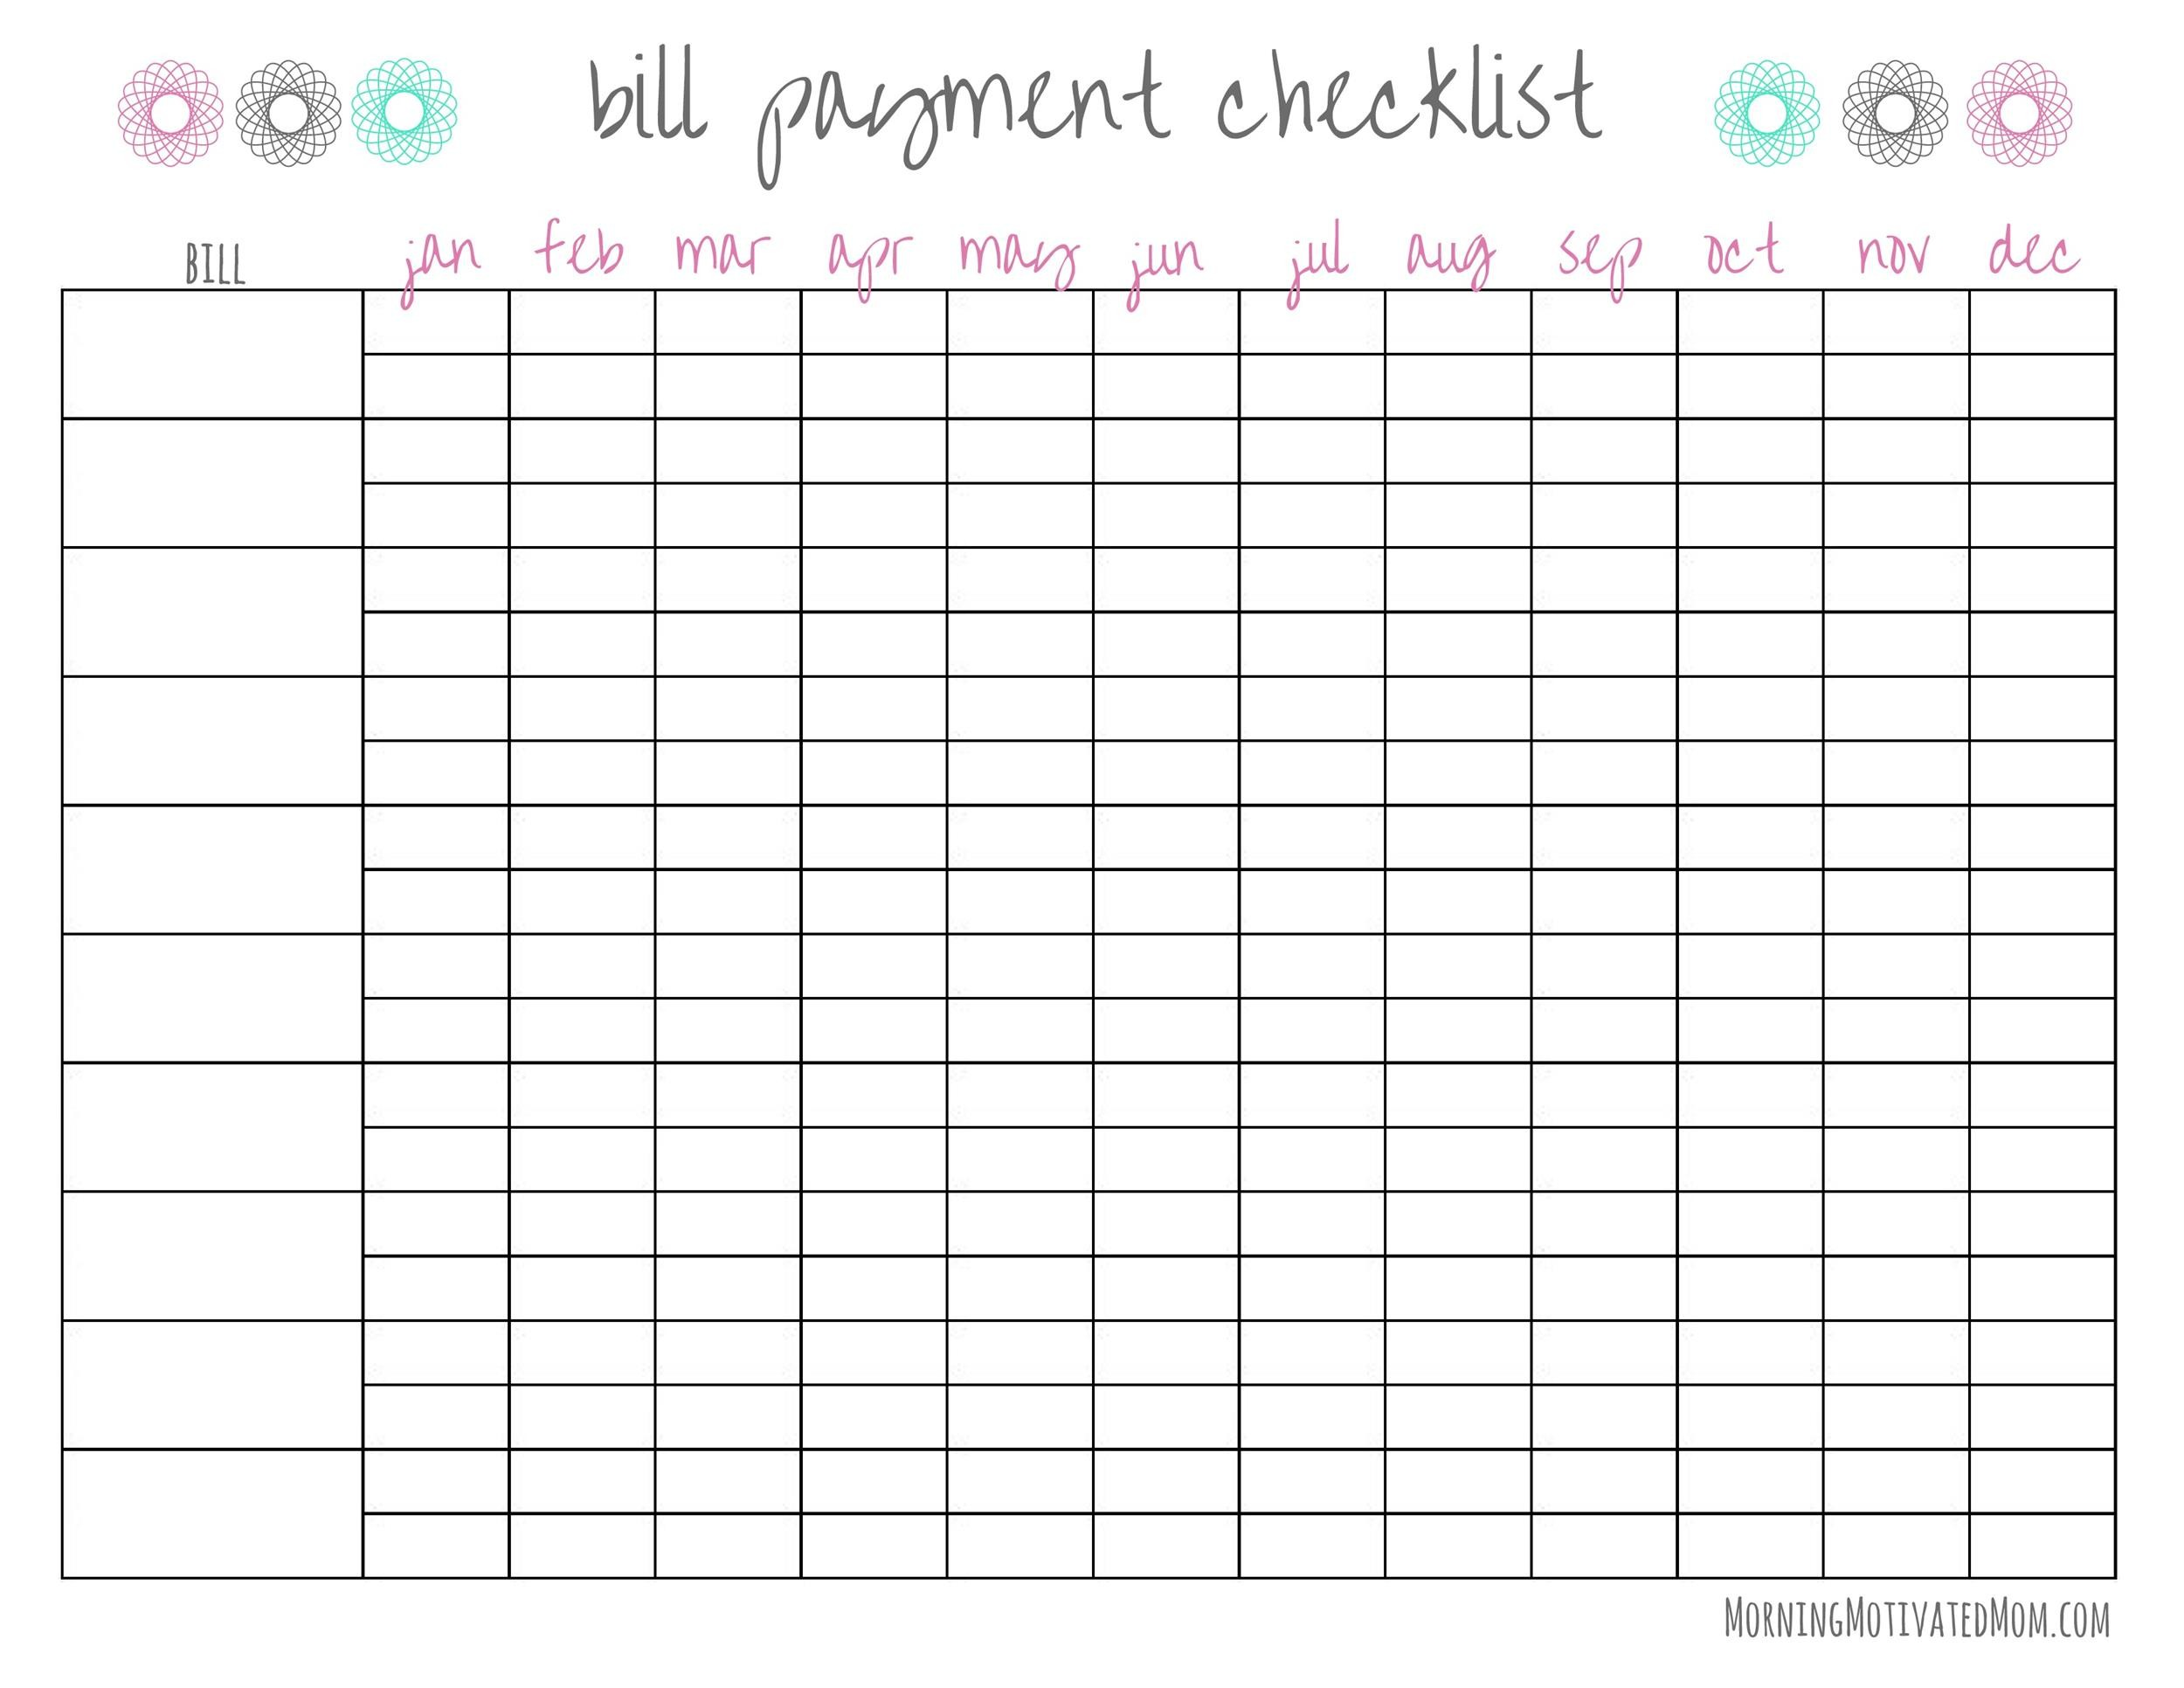 33 free bill pay checklists  u0026 bill calendars  pdf  word  u0026 excel